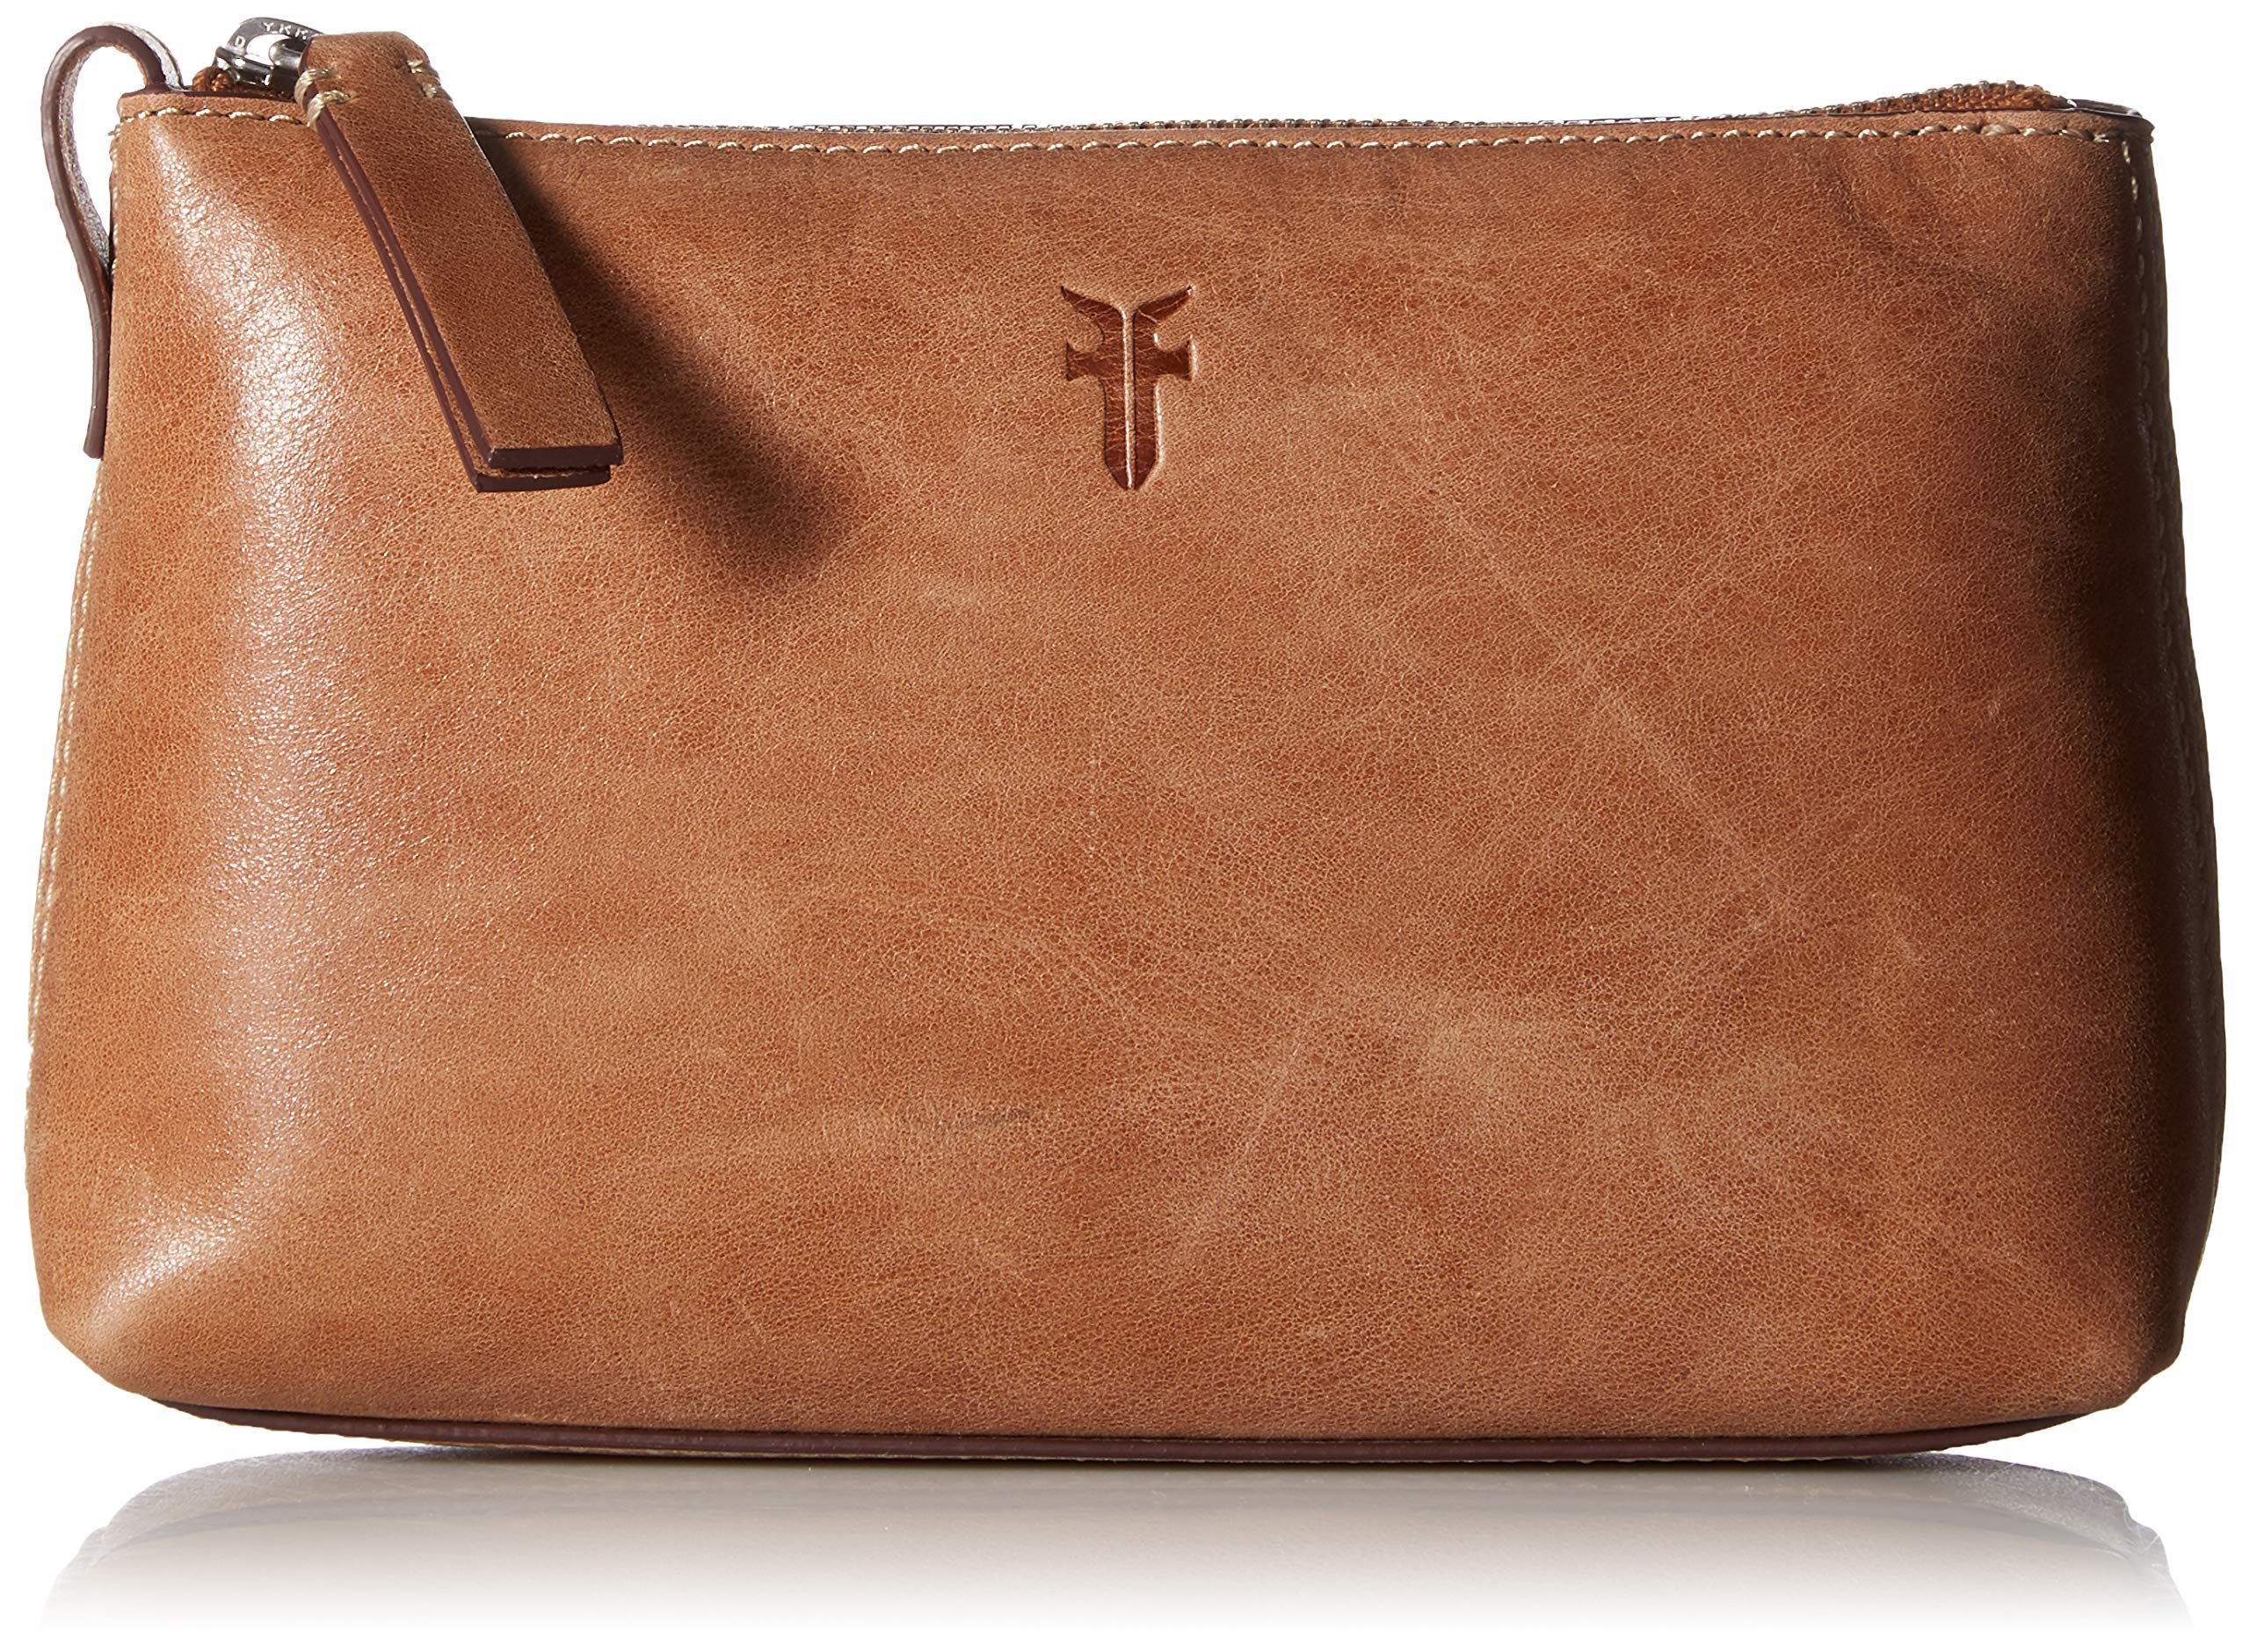 FRYE Leather Zip Makeup Case, tan